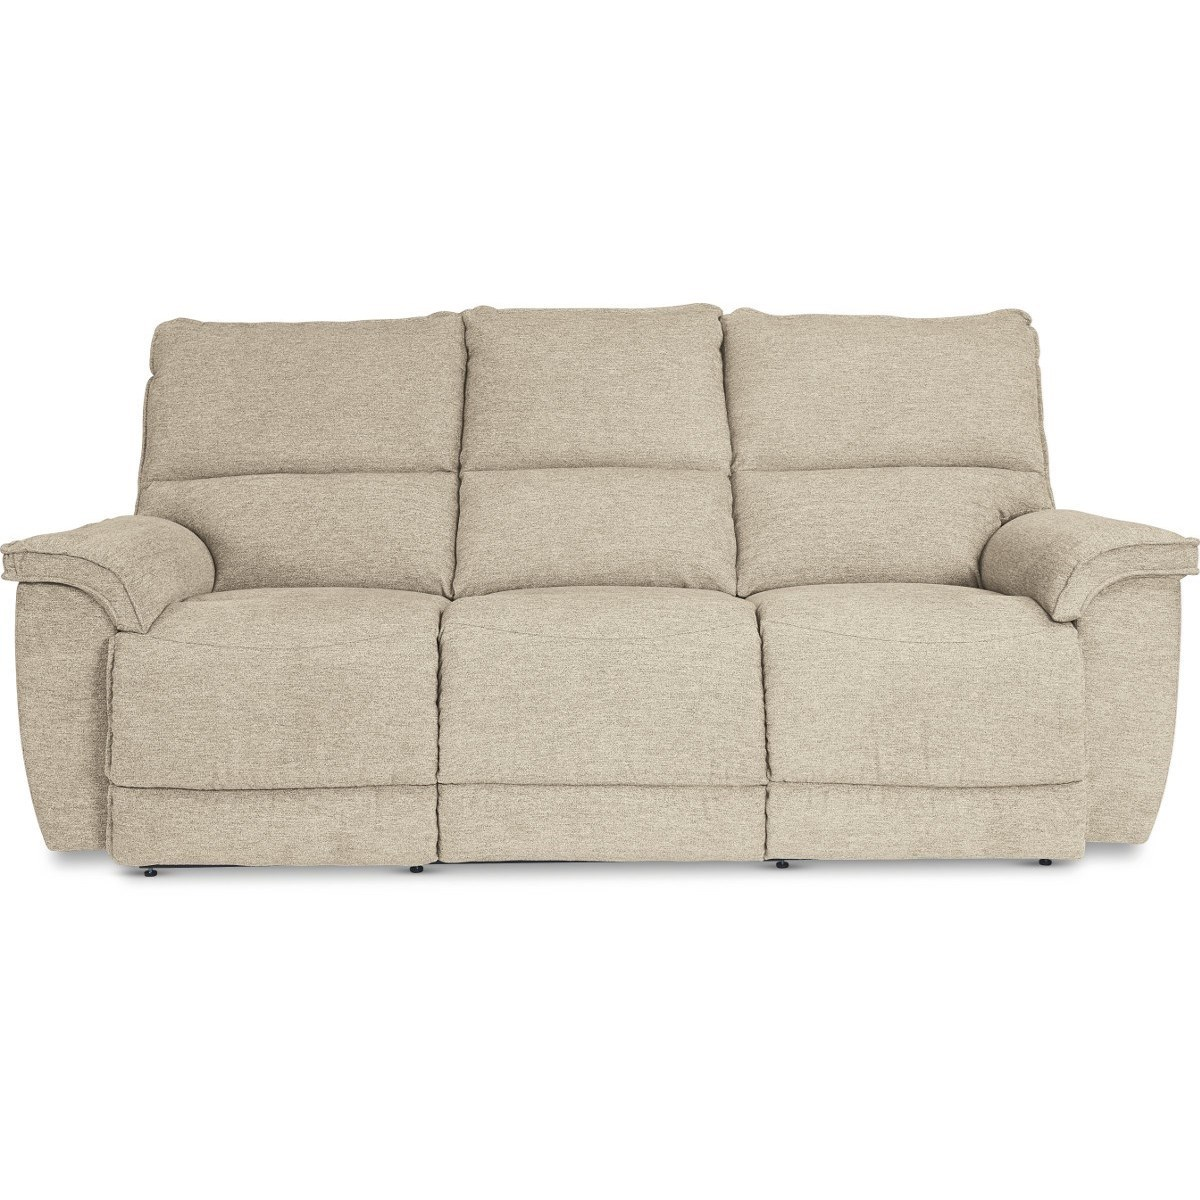 La Z Boy Norris Casual Power Reclining Sofa With Usb Charging Ports Bennett S Furniture And Mattresses Reclining Sofas